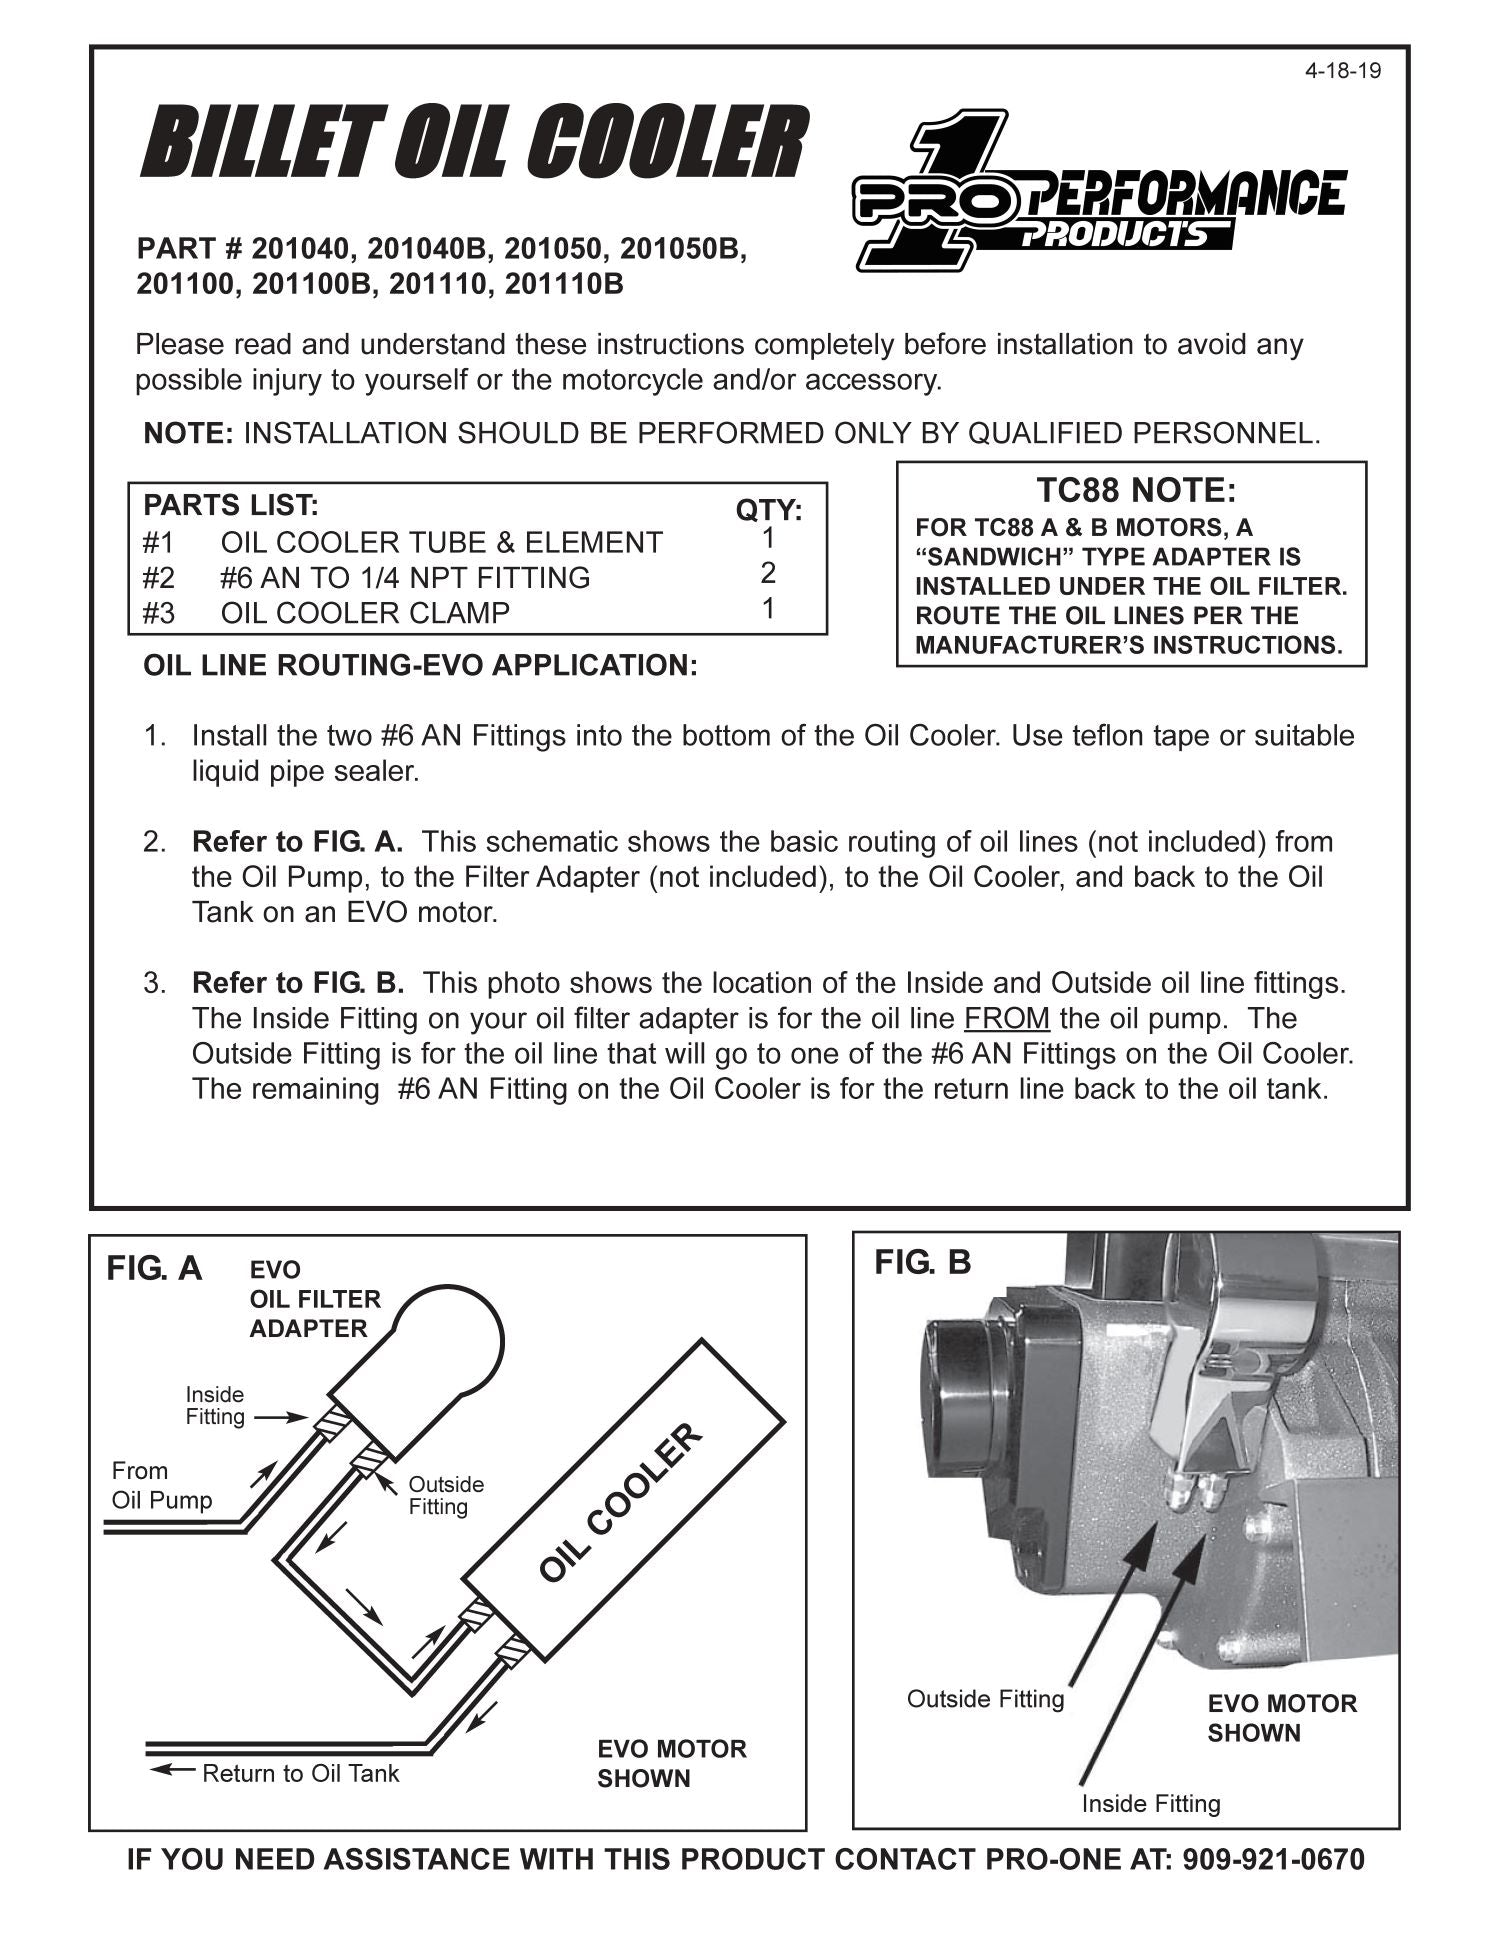 Pro-One Performance Products, Inc. Billet Oil Cooler Instruction Sheet